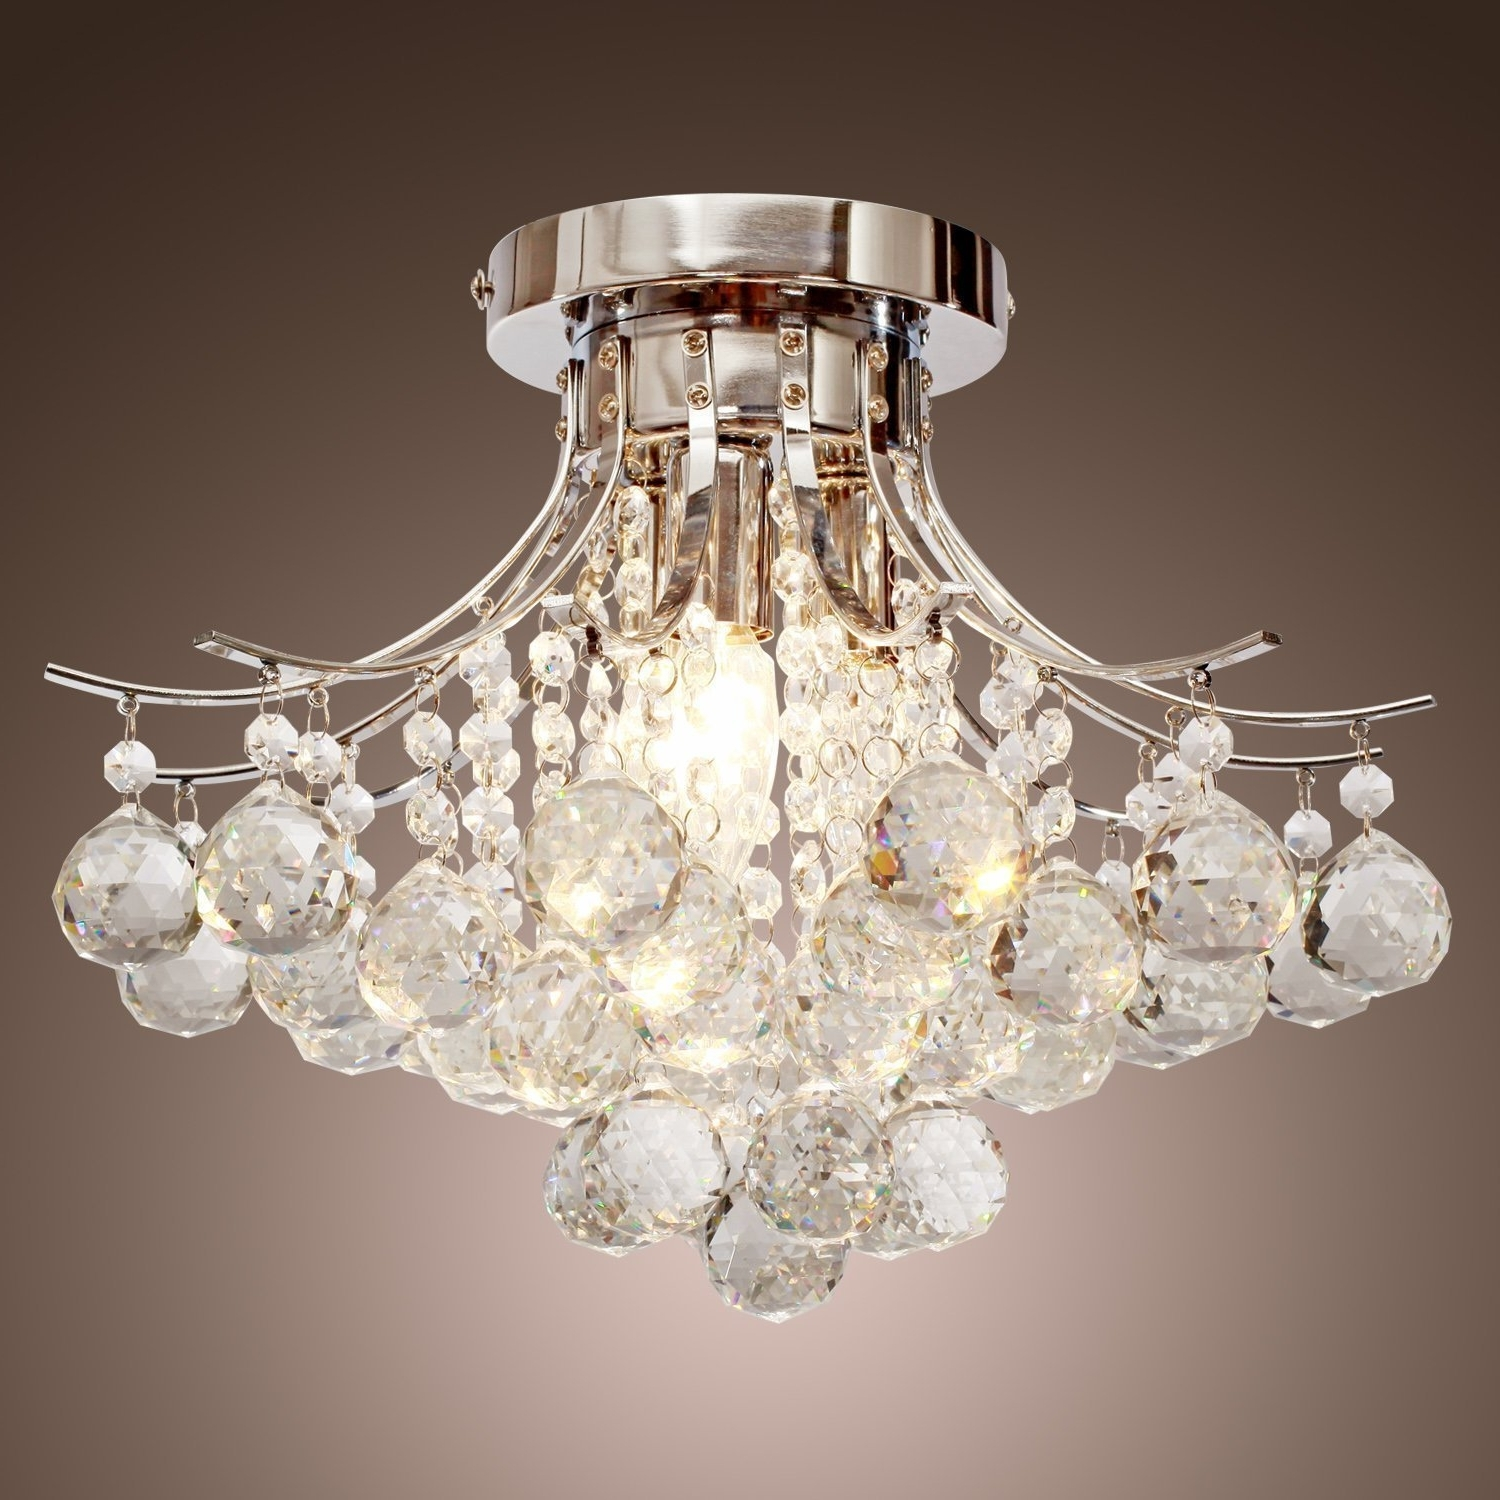 Current Light : Living Room Ceiling Lights Close To Flush Mount Lighting Intended For Low Ceiling Chandelier (View 4 of 15)